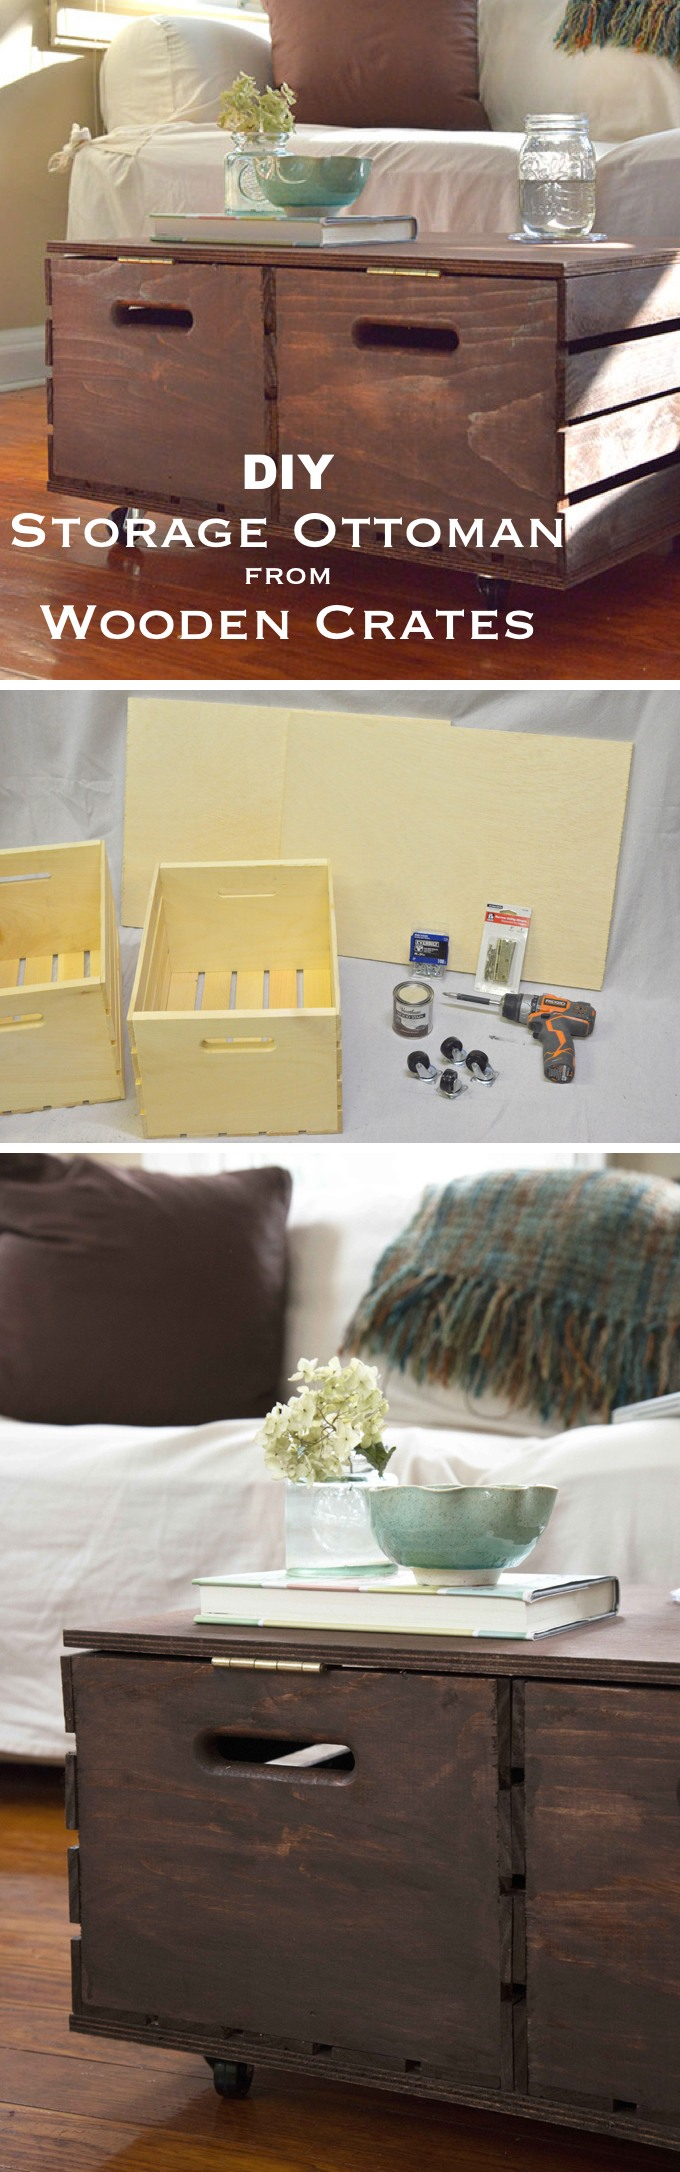 DIY Storage Ottoman Made from Wooden Crates